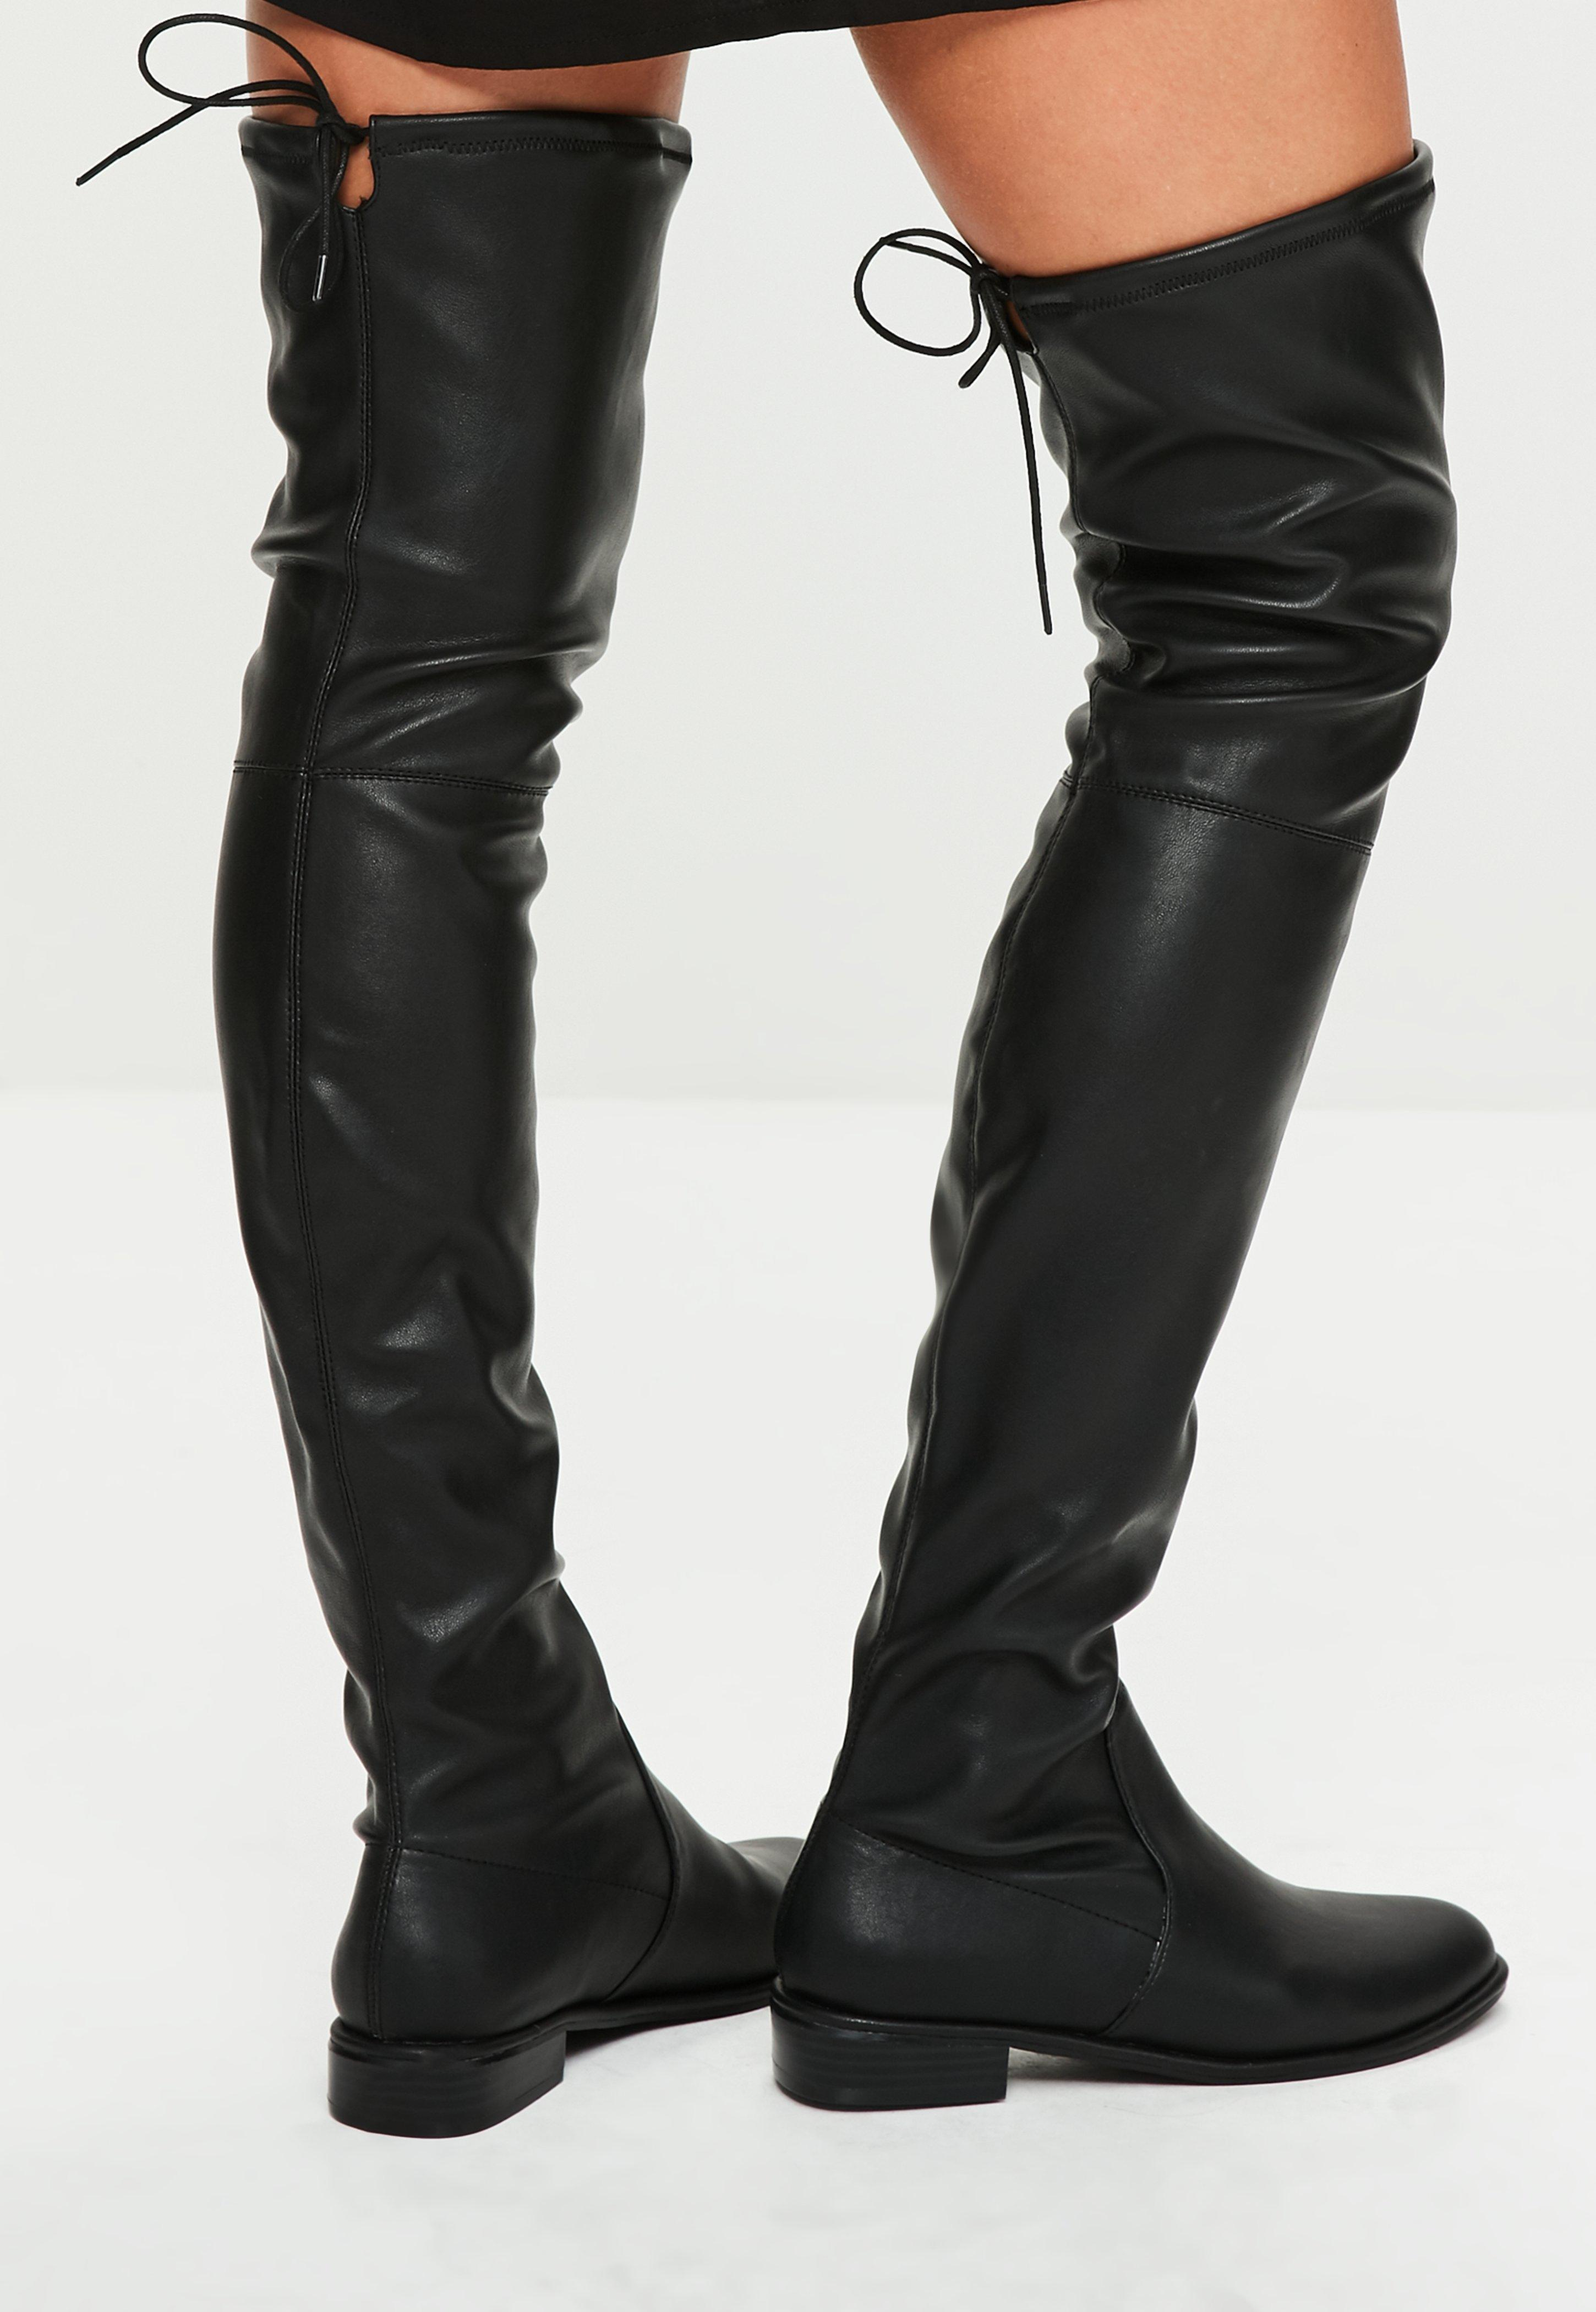 Lyst - Missguided Black Faux Leather Flat Over The Knee Boots in Black 00fc253bdc00